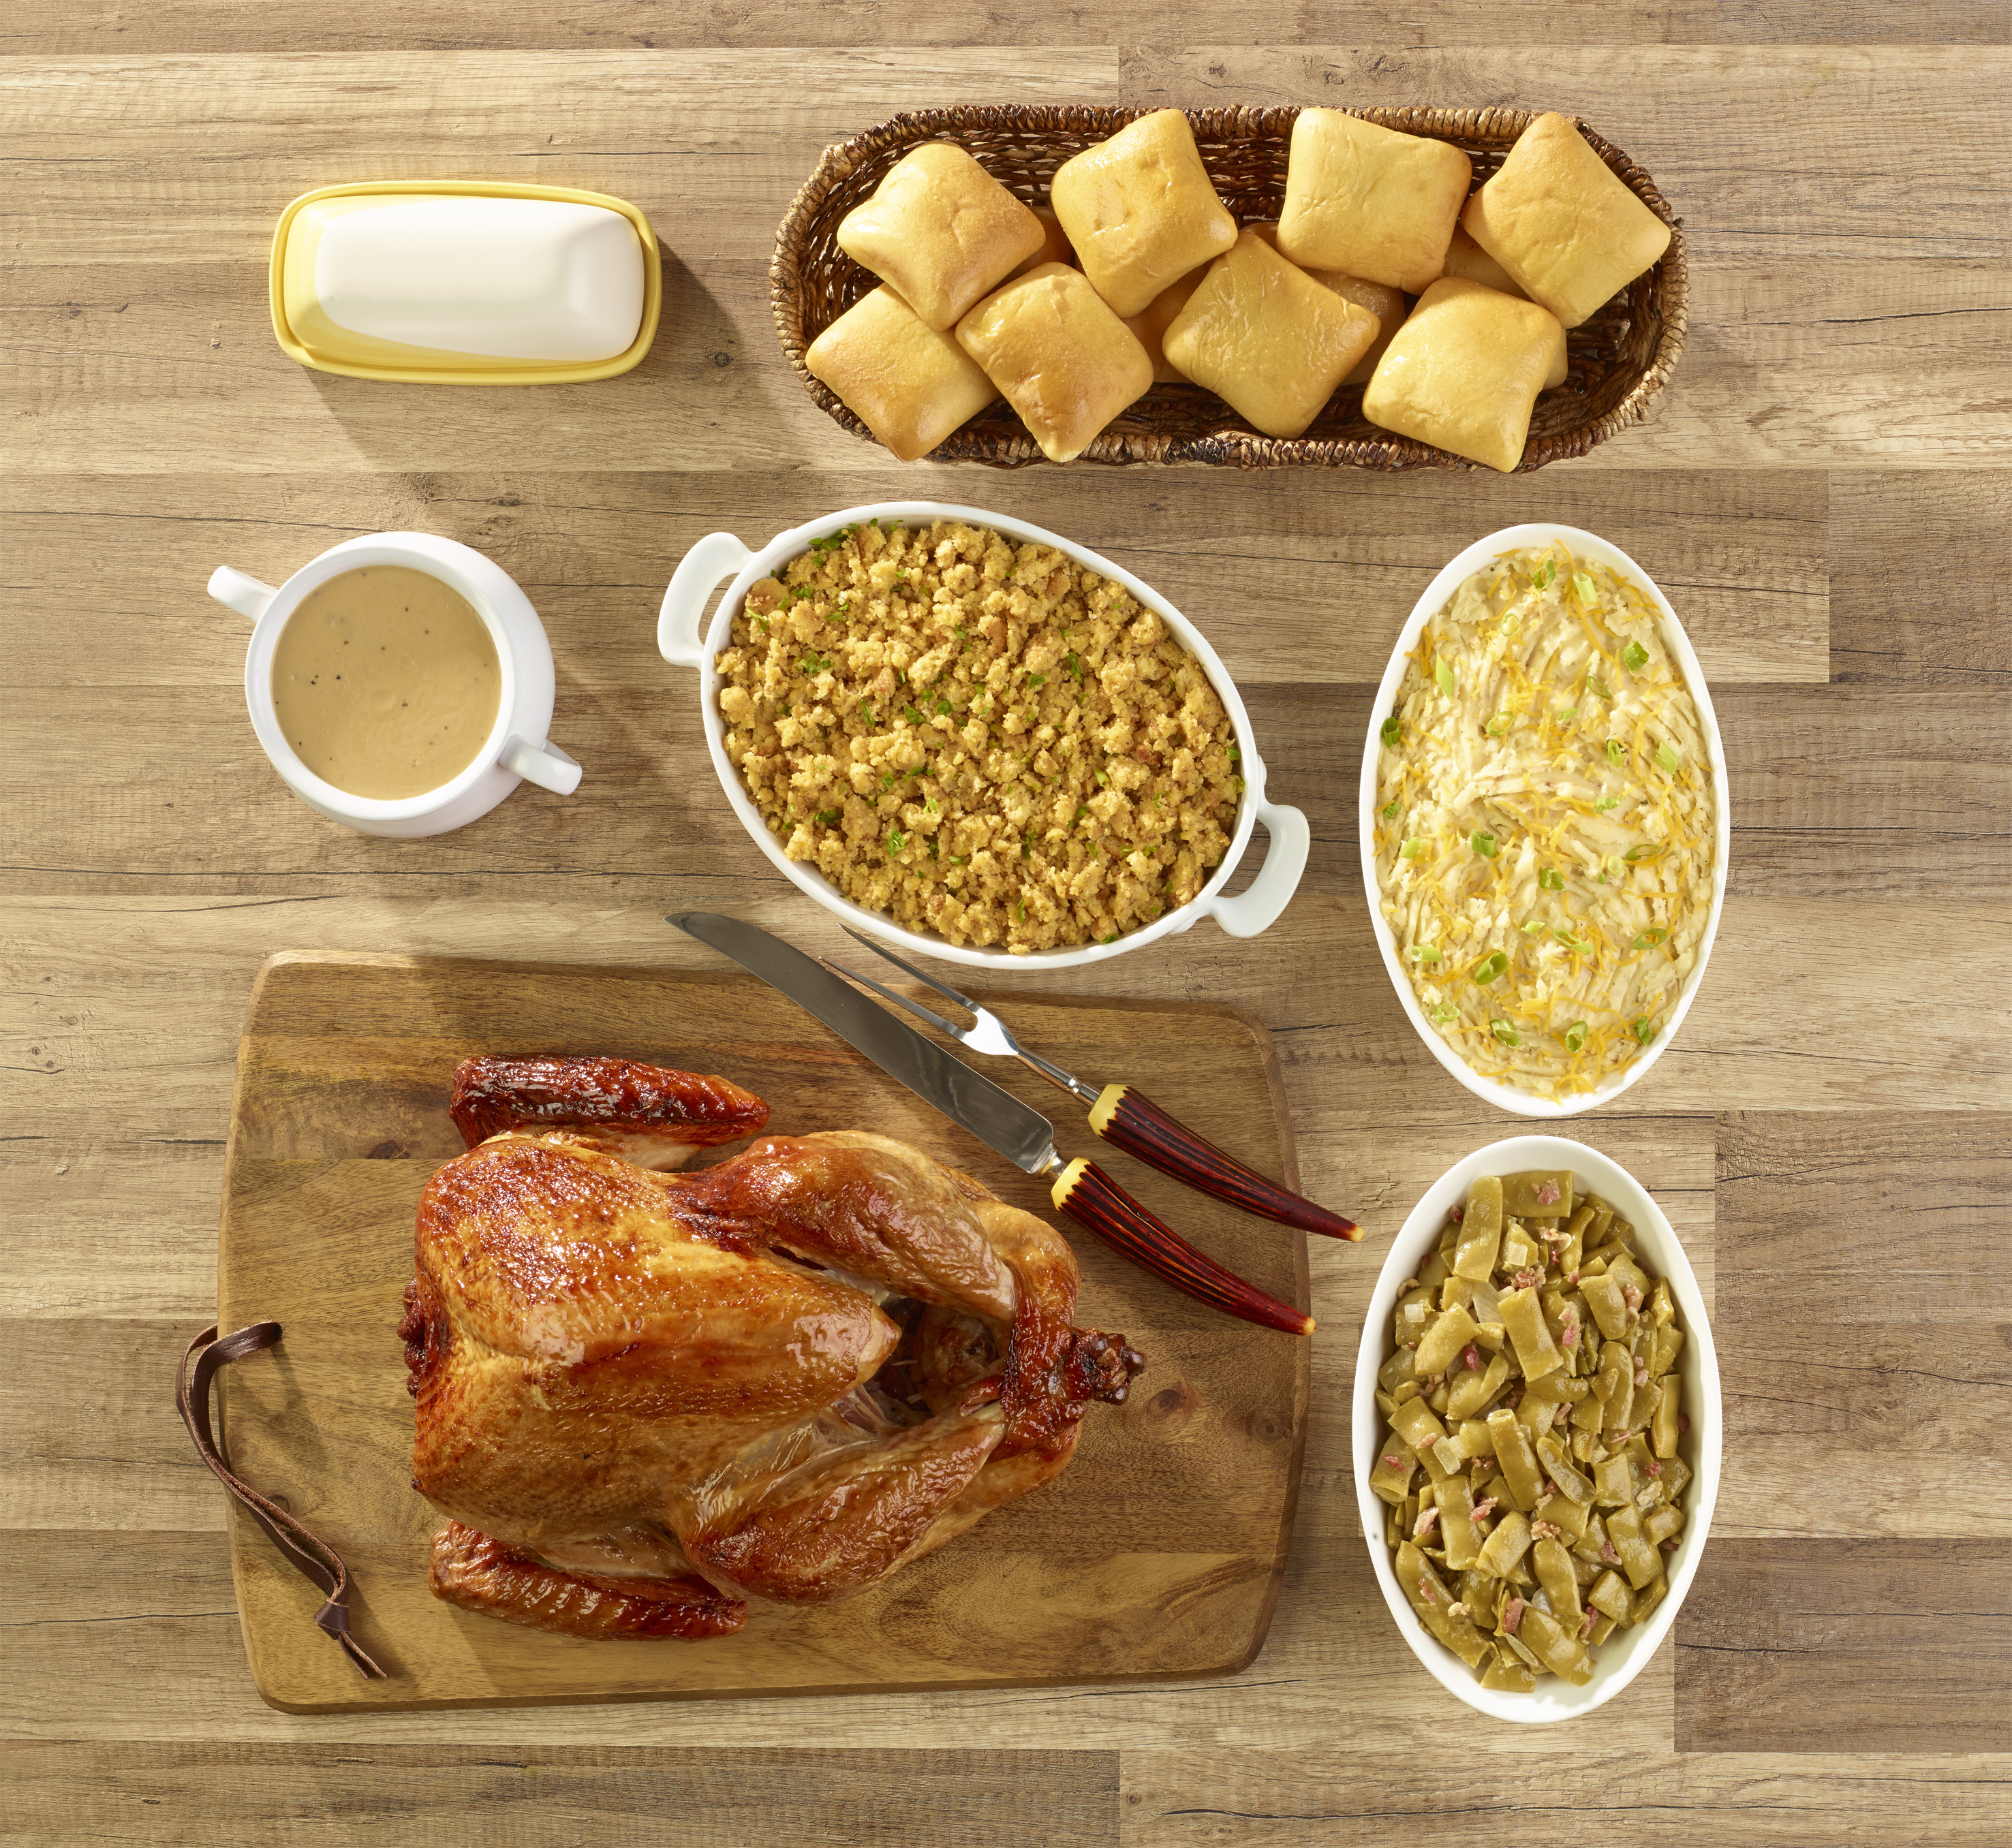 Dickey's Barbecue Pit Adds to Holiday Supply to Offer Signature Holiday Feasts